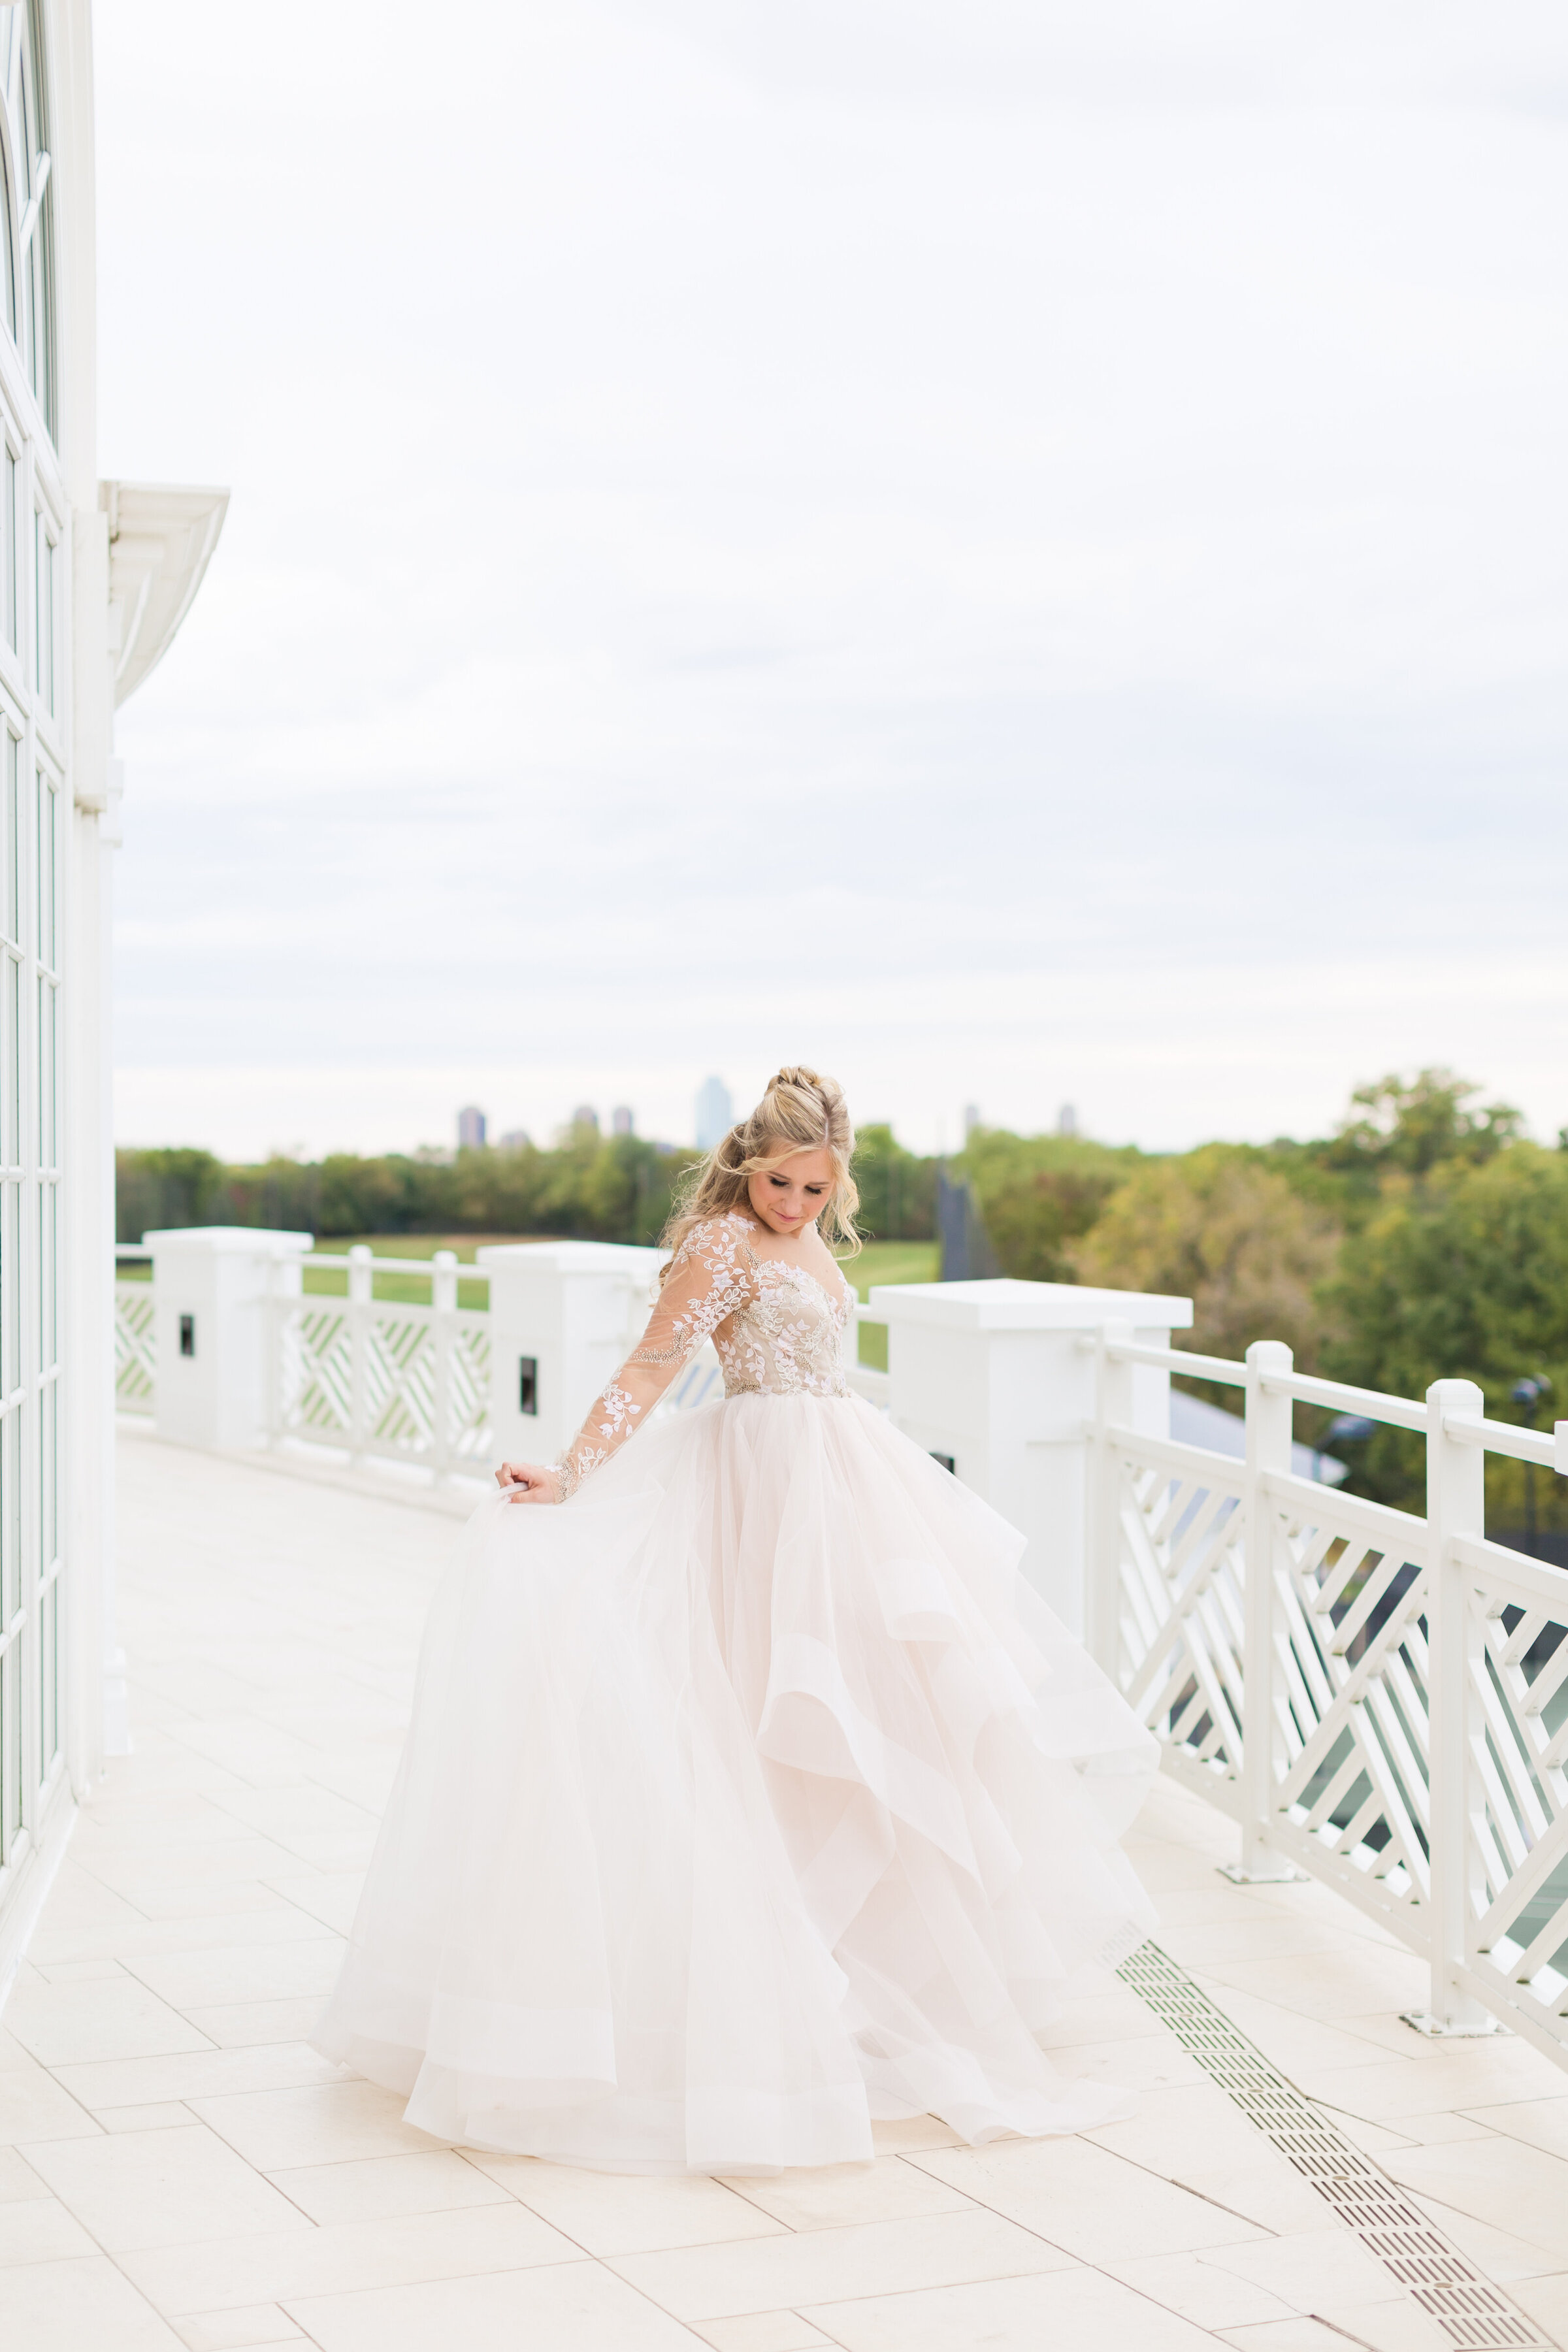 kirbykphotography_hayleypaigeweddingdress-1-2